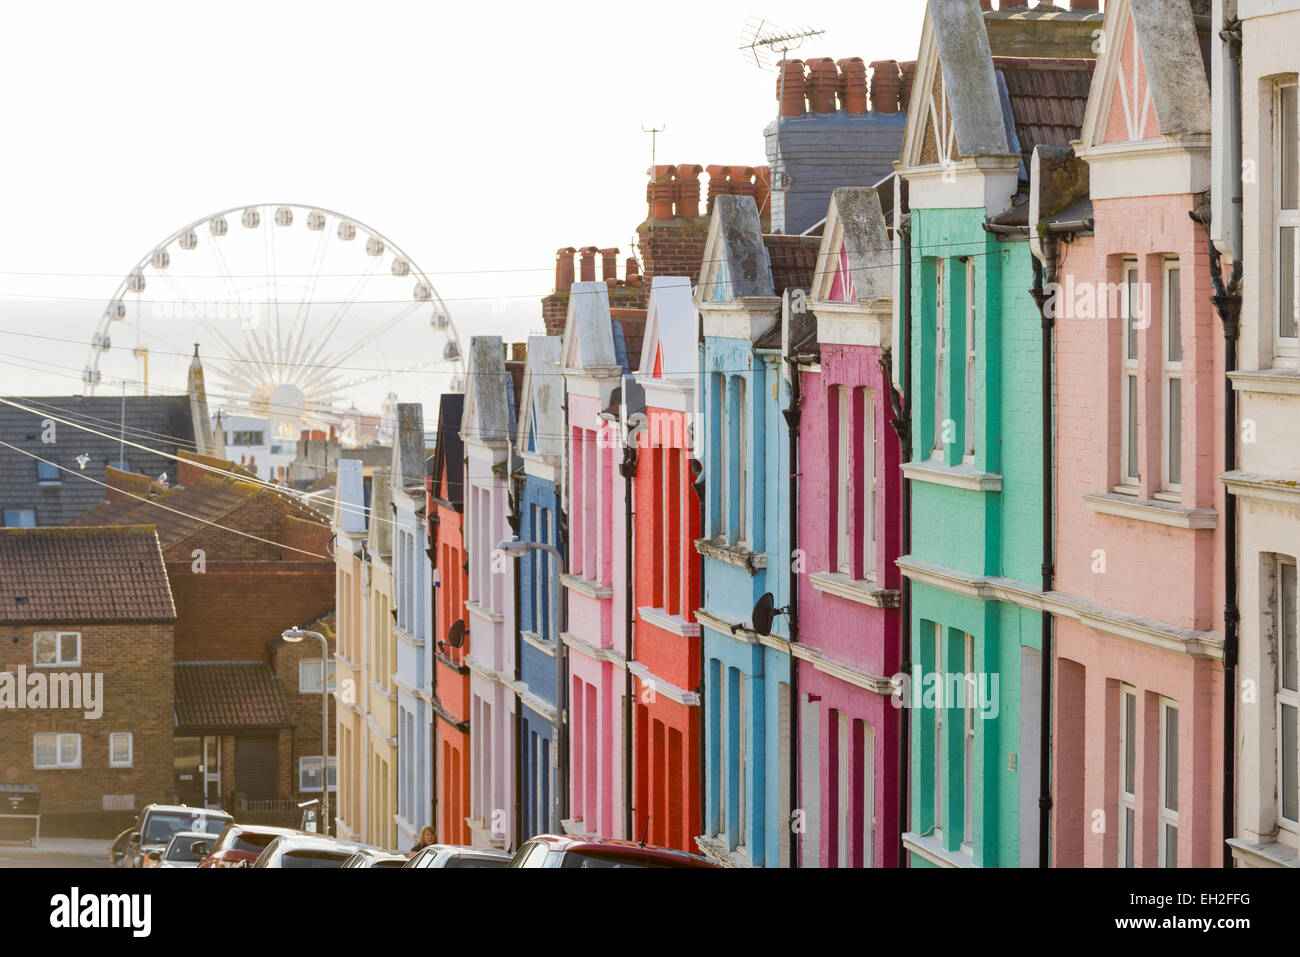 Row of colourful painted terraced houses in Brighton, East Sussex, England, UK. - Stock Image